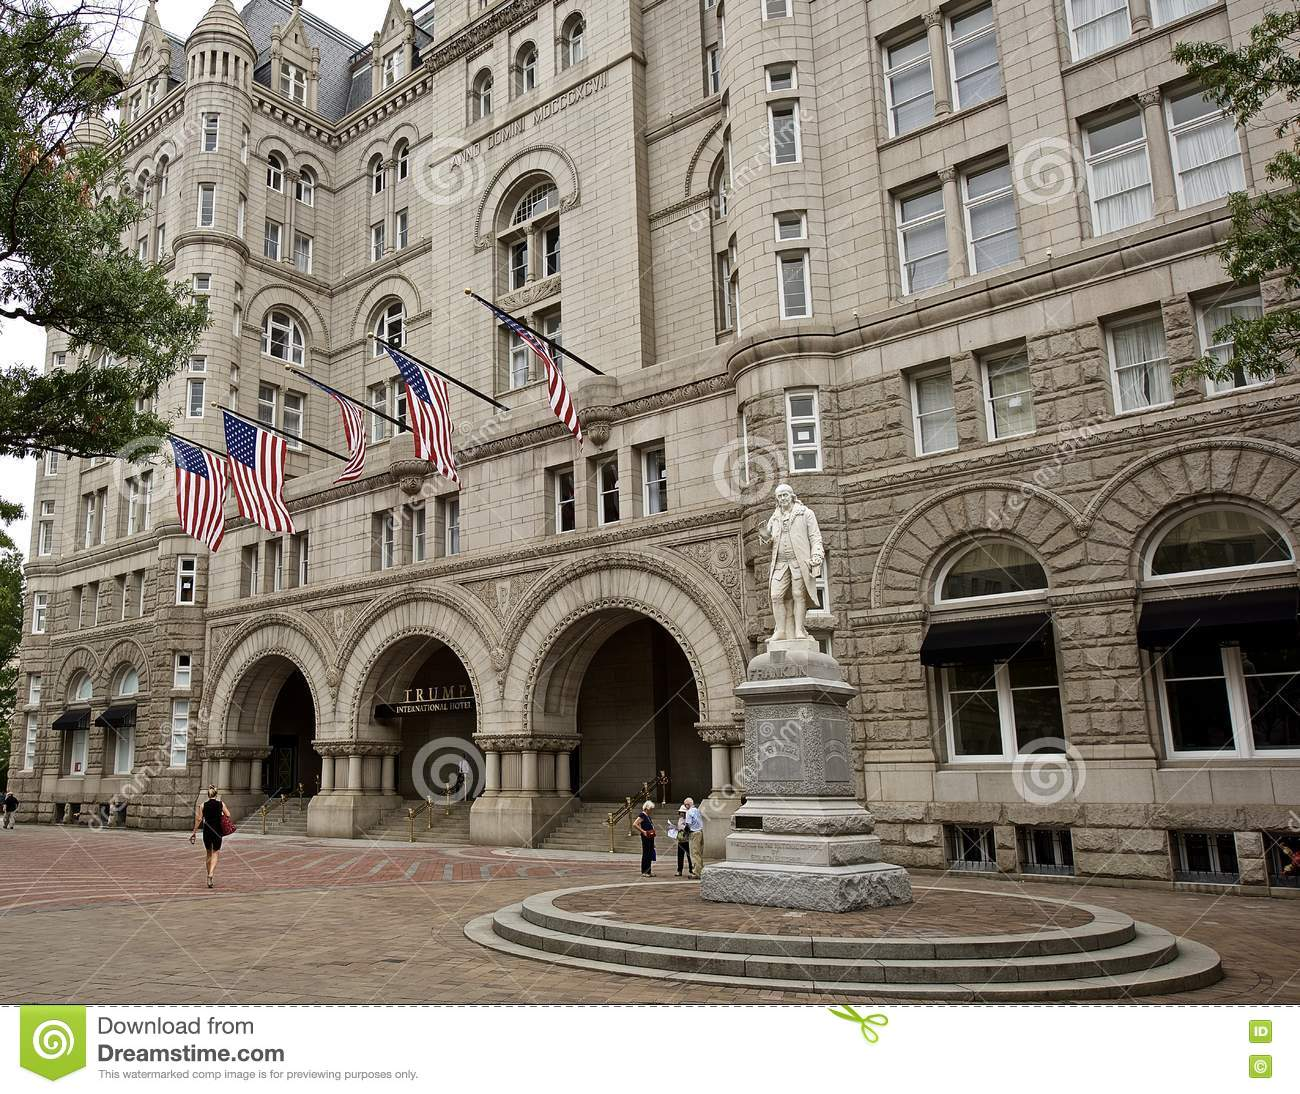 Trump International Hotel Formally The Old Post Office